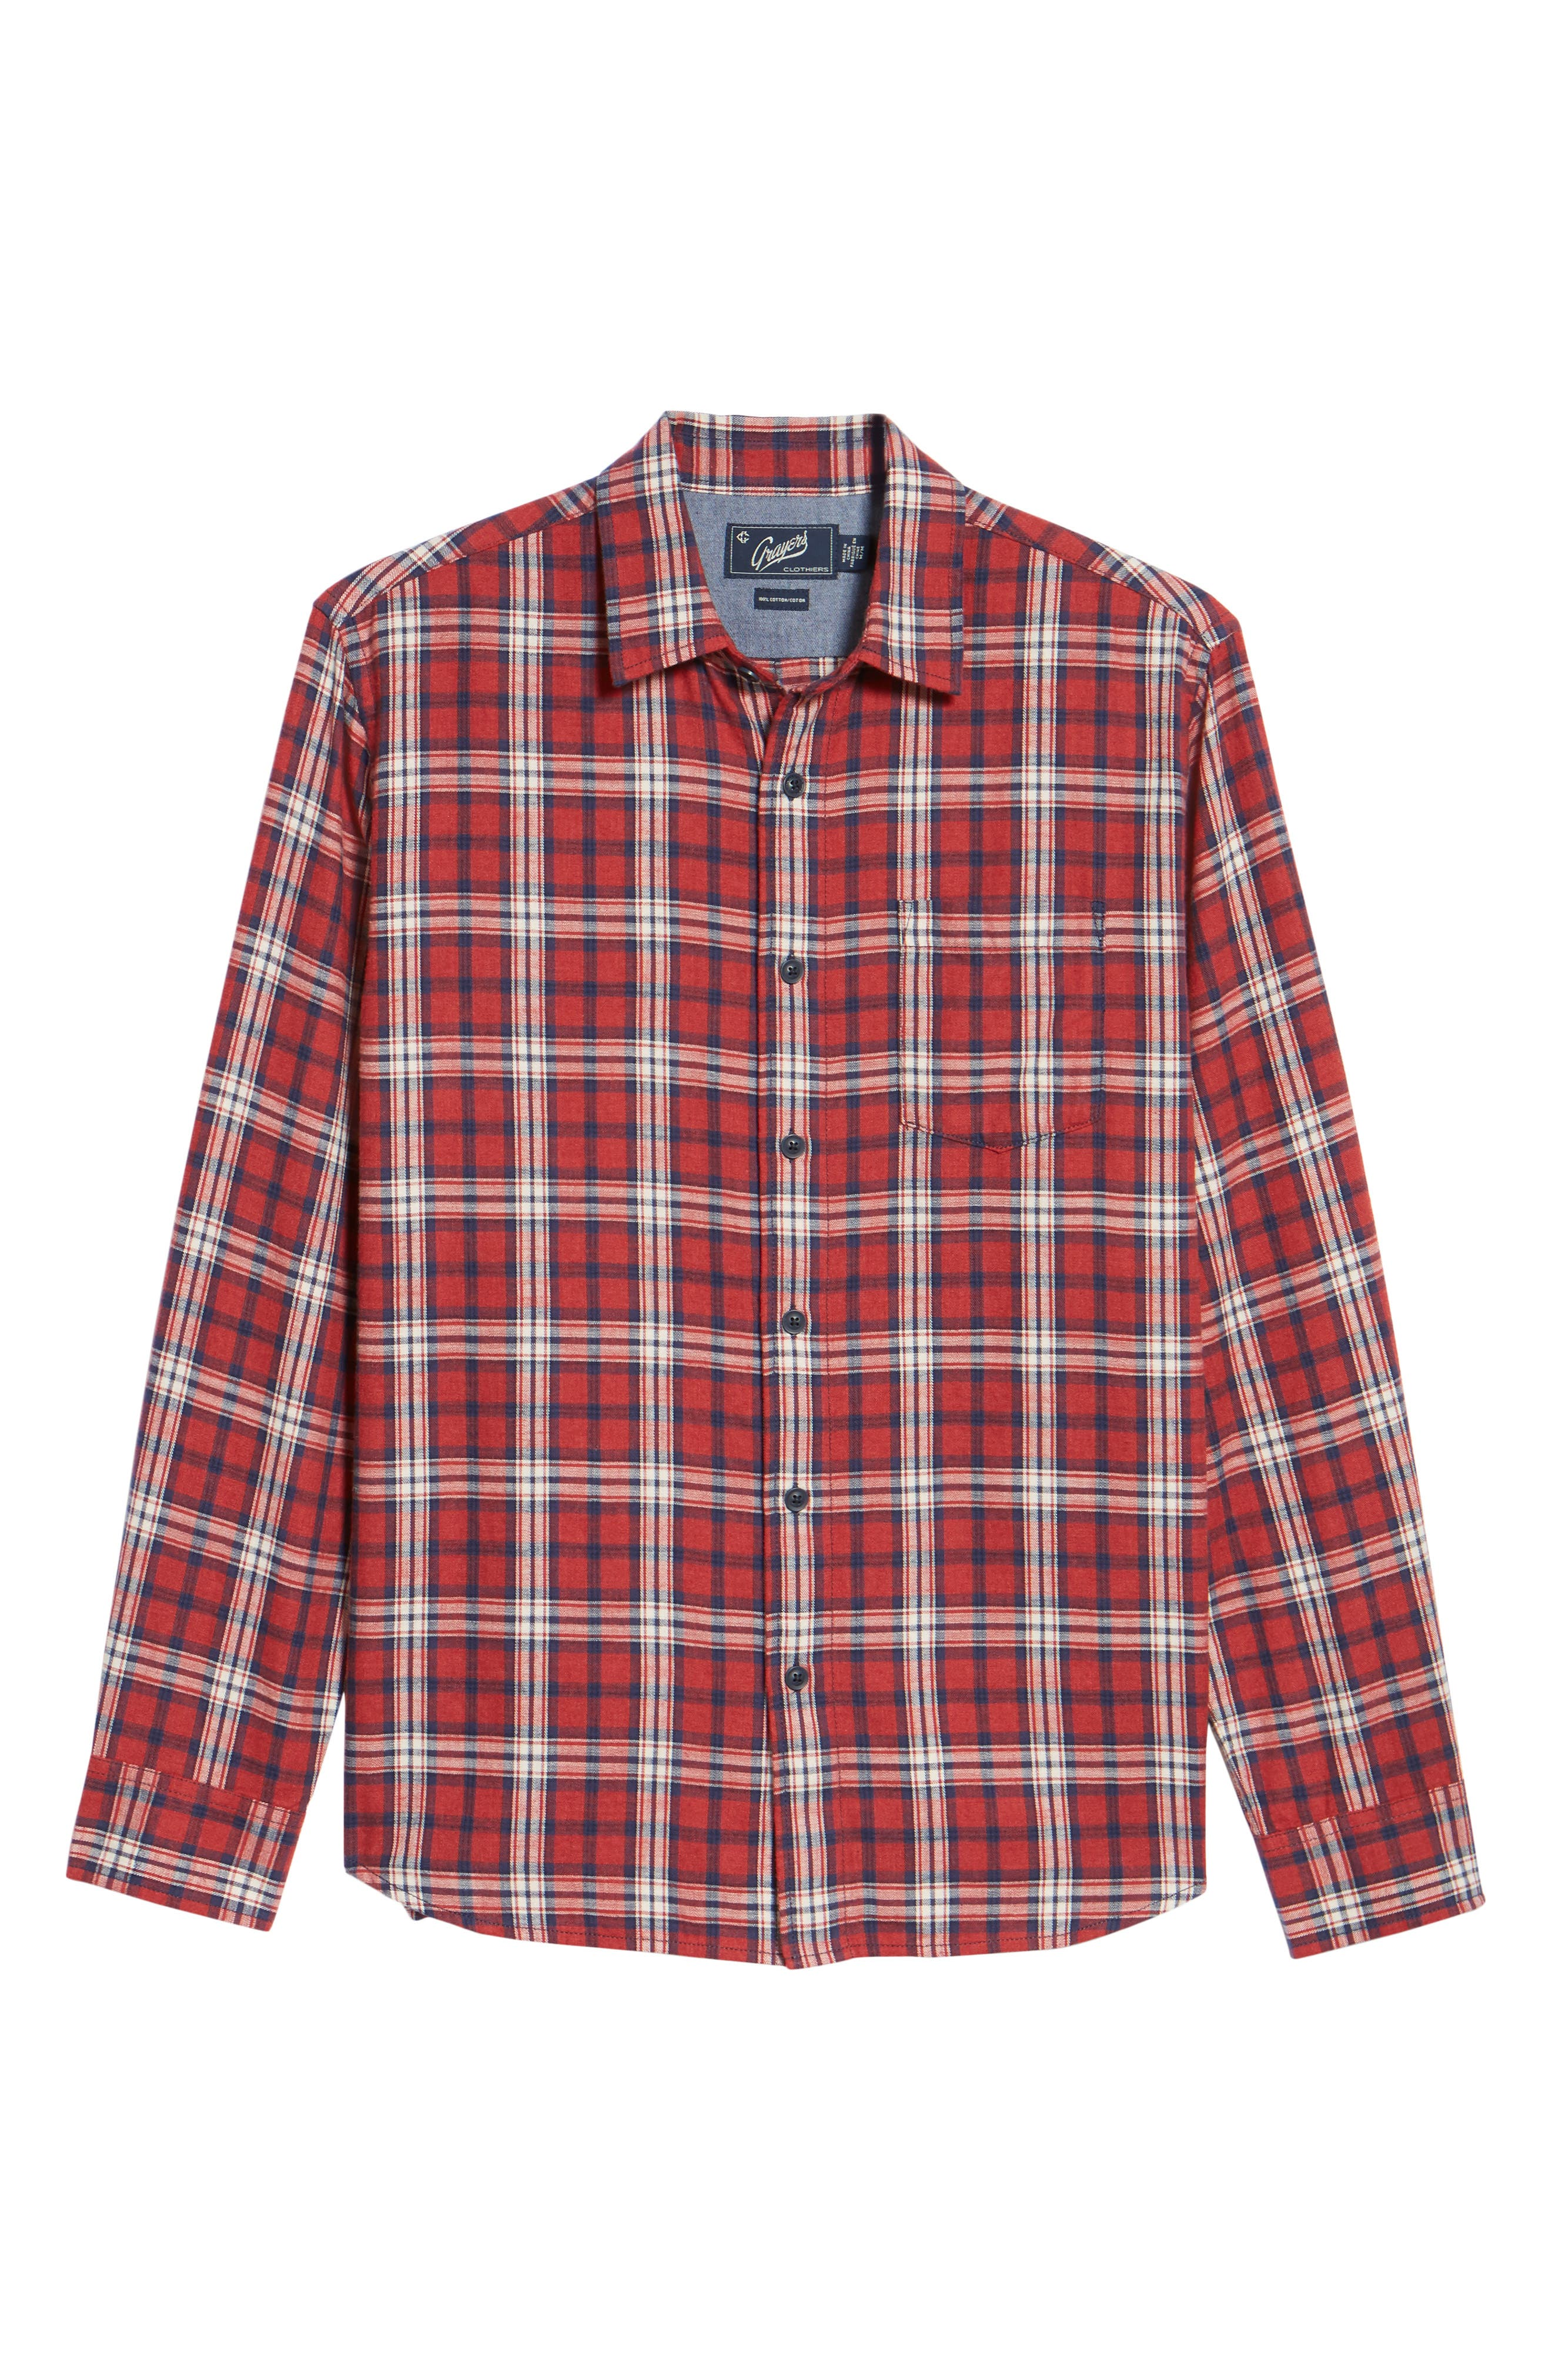 Winslow Slub Plaid Twill Sport Shirt,                             Alternate thumbnail 6, color,                             Red